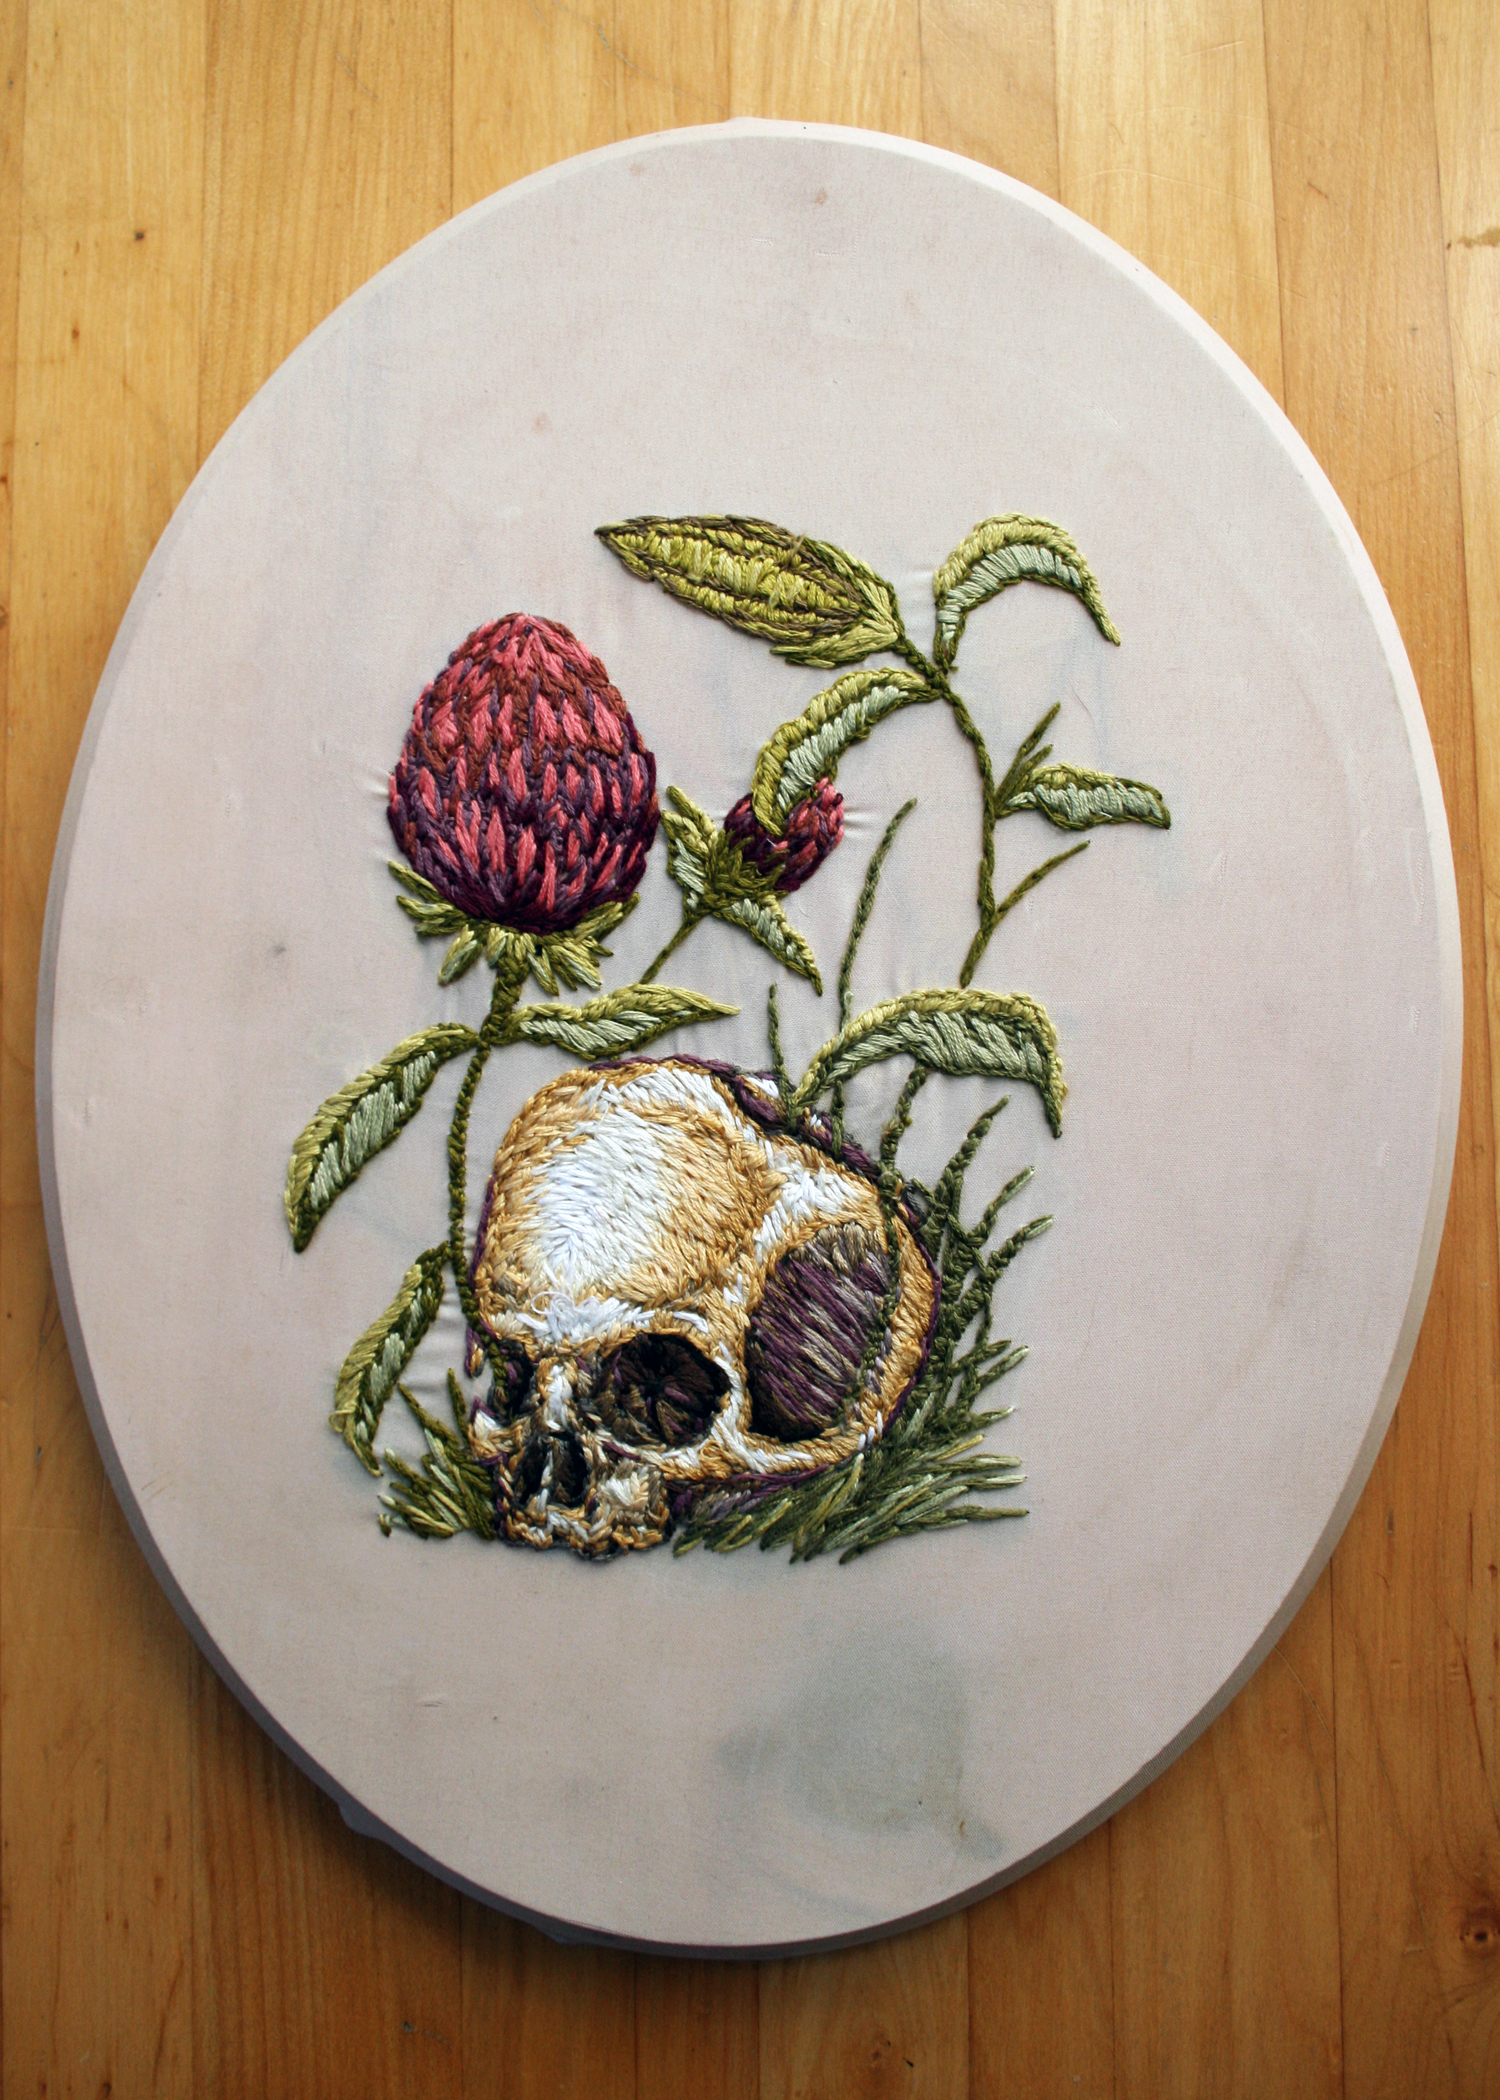 Thistles, 8in x 10in fabric on wood block, embroidery thread.